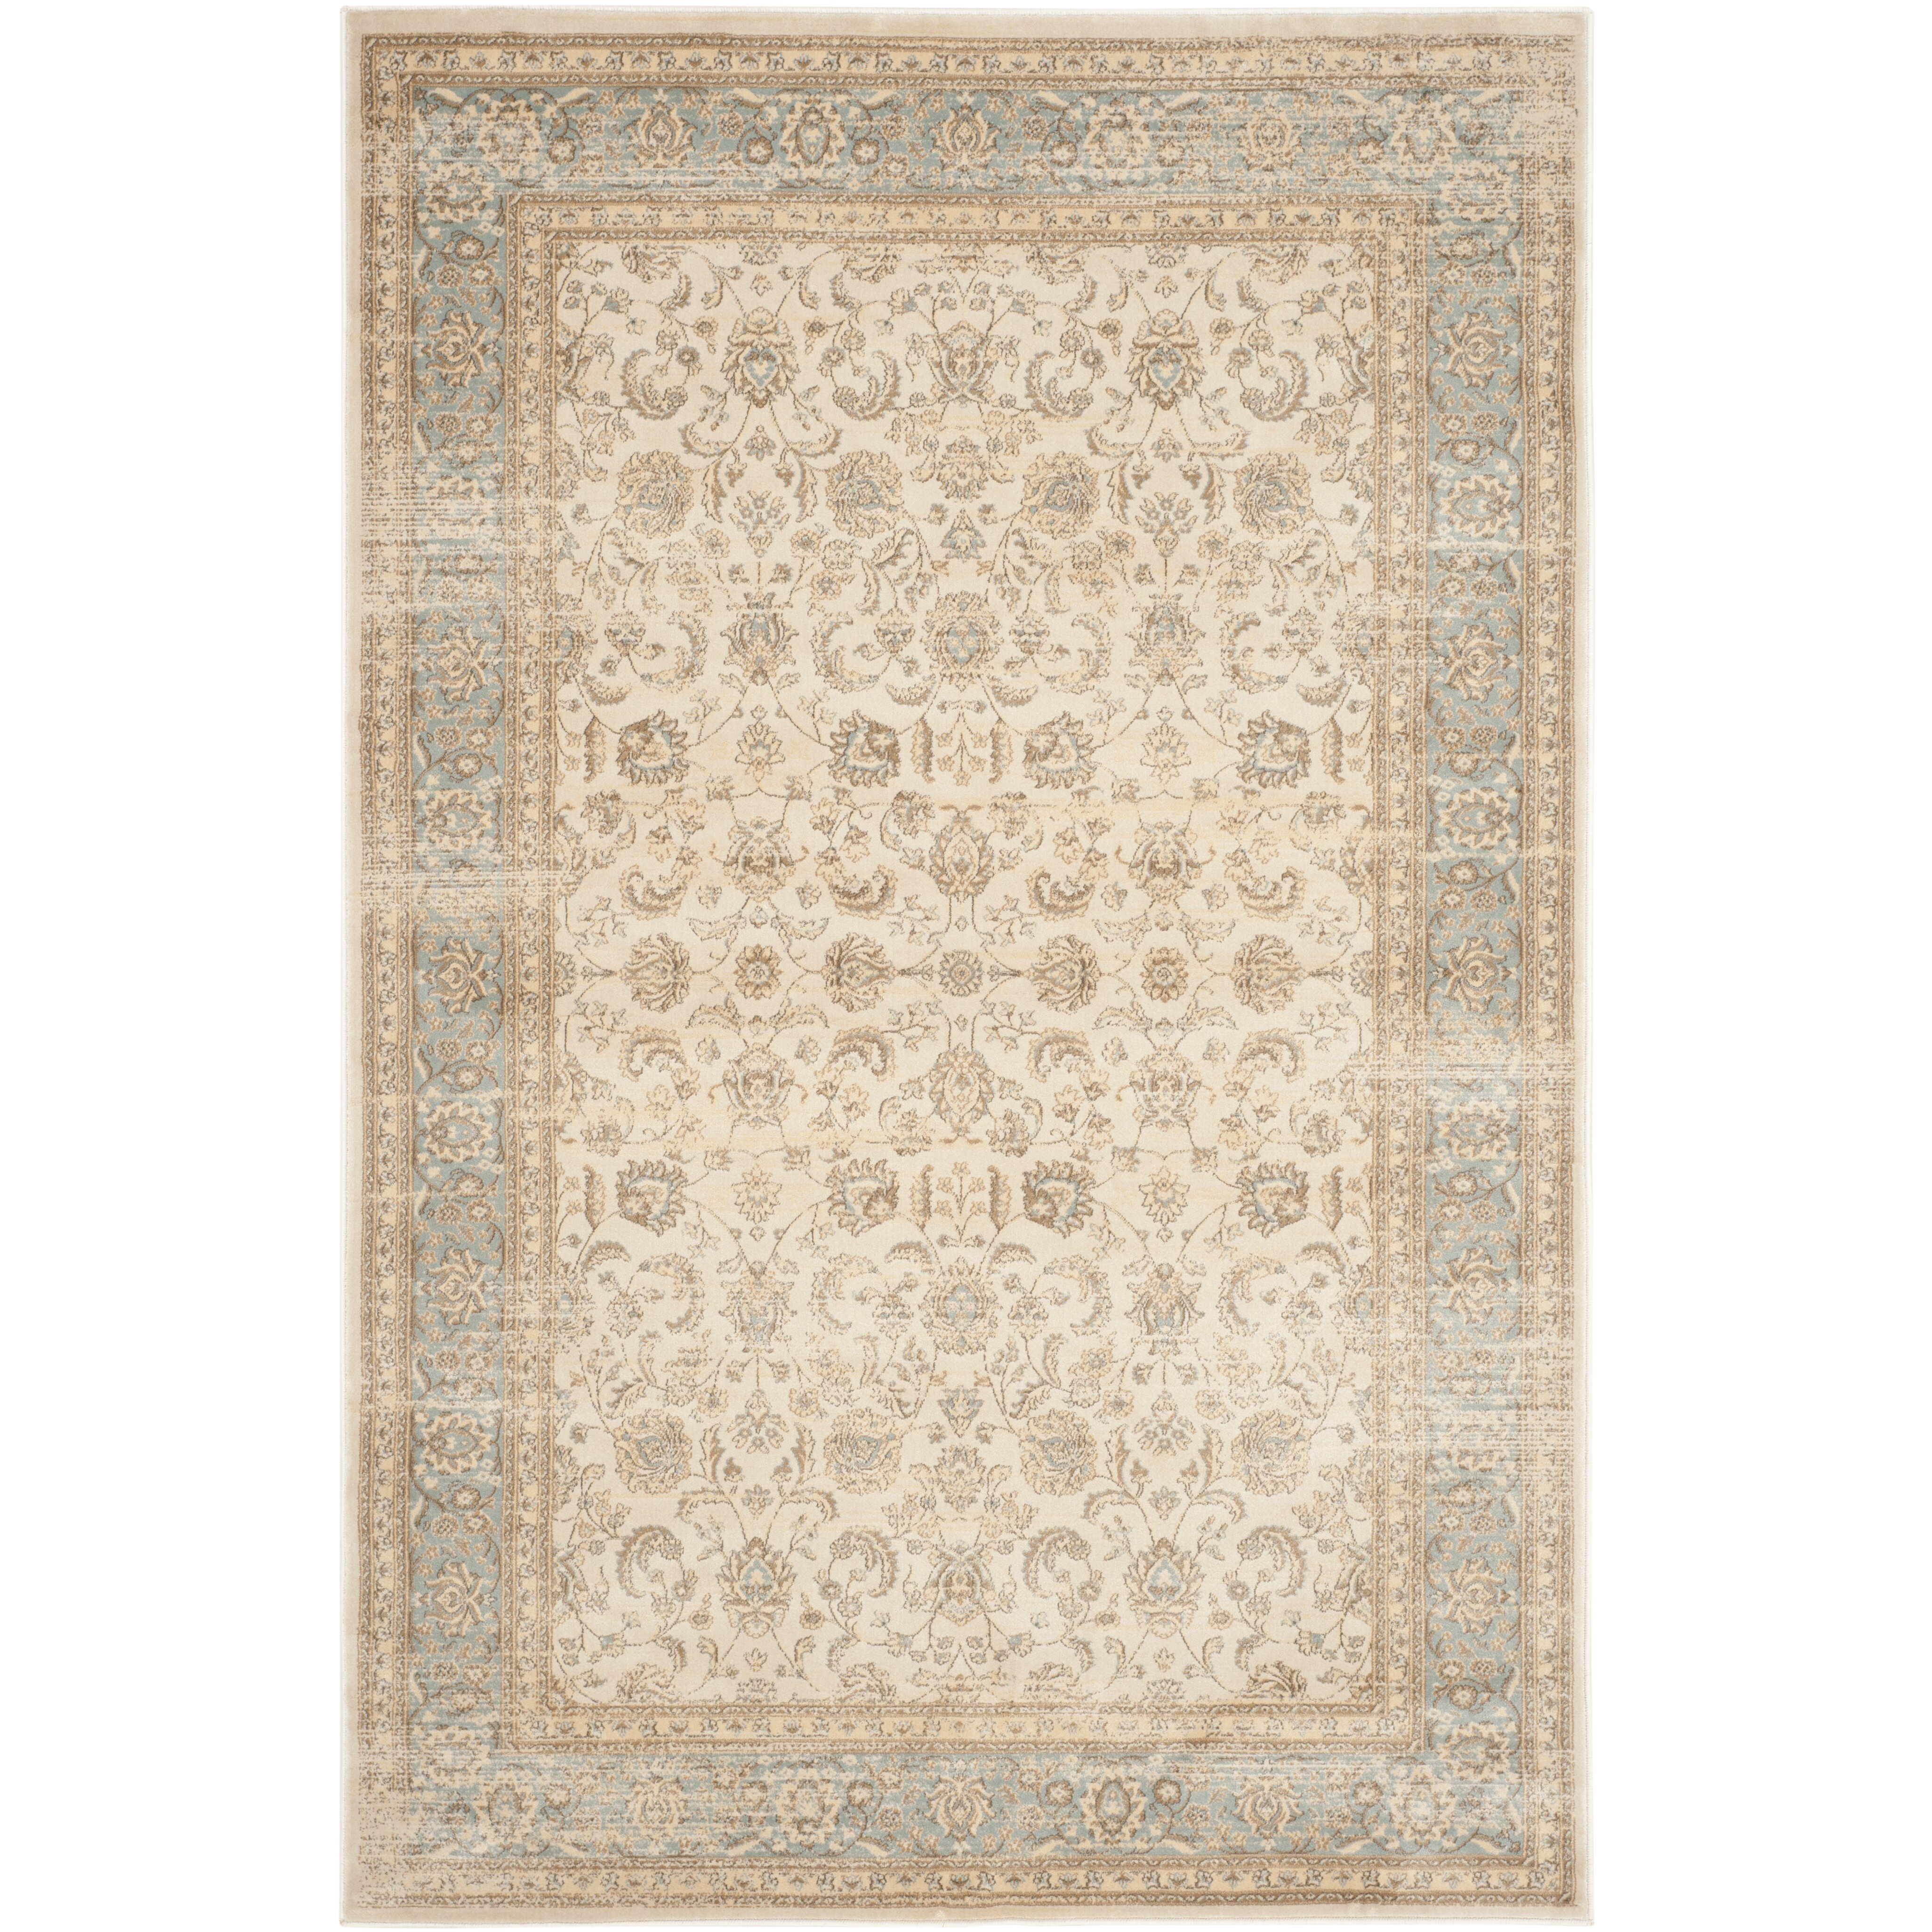 Safavieh Vintage Ivory/Light Blue Area Rug & Reviews